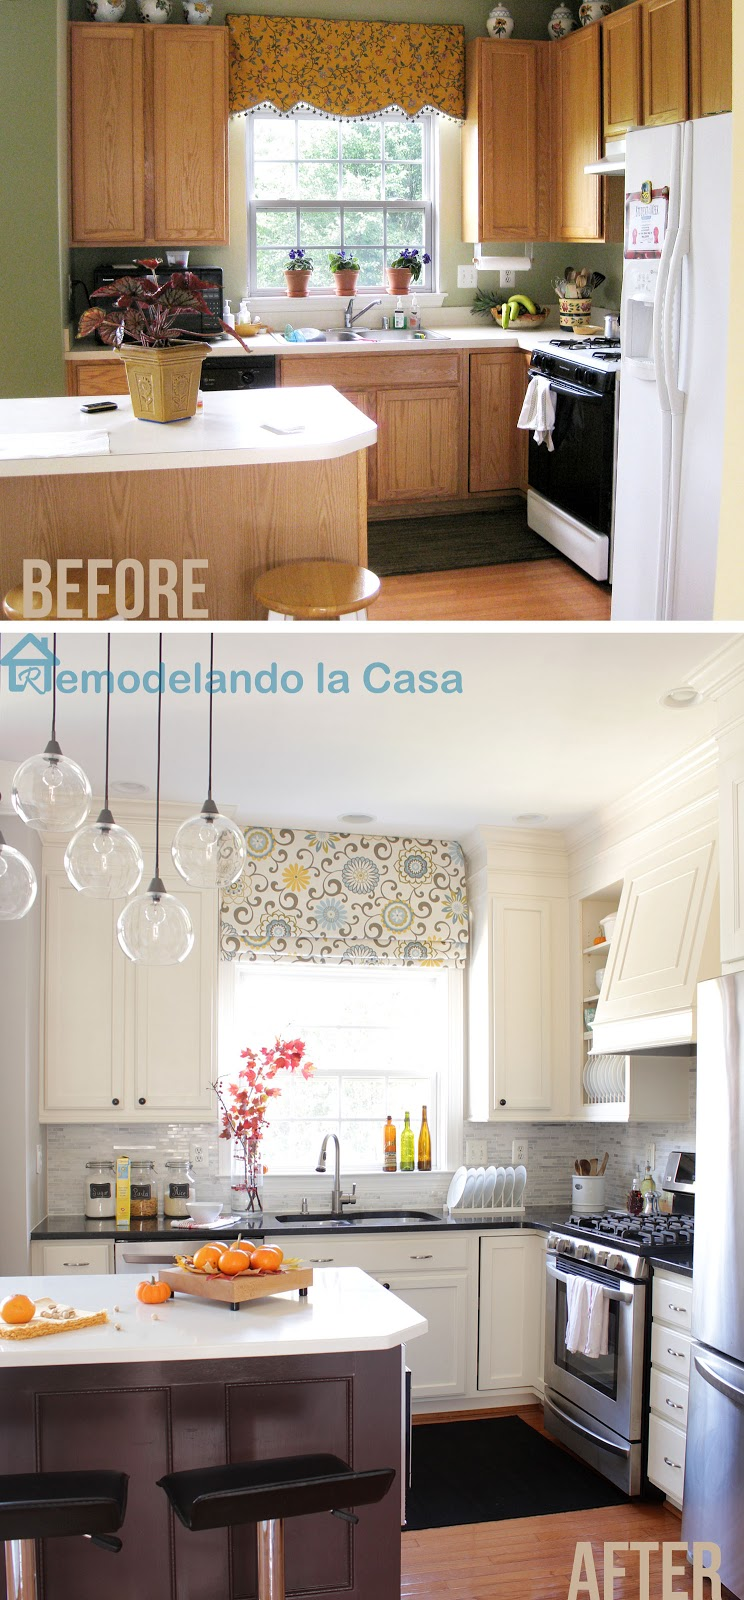 Kitchen makeover remodelando la casa for Design makeover